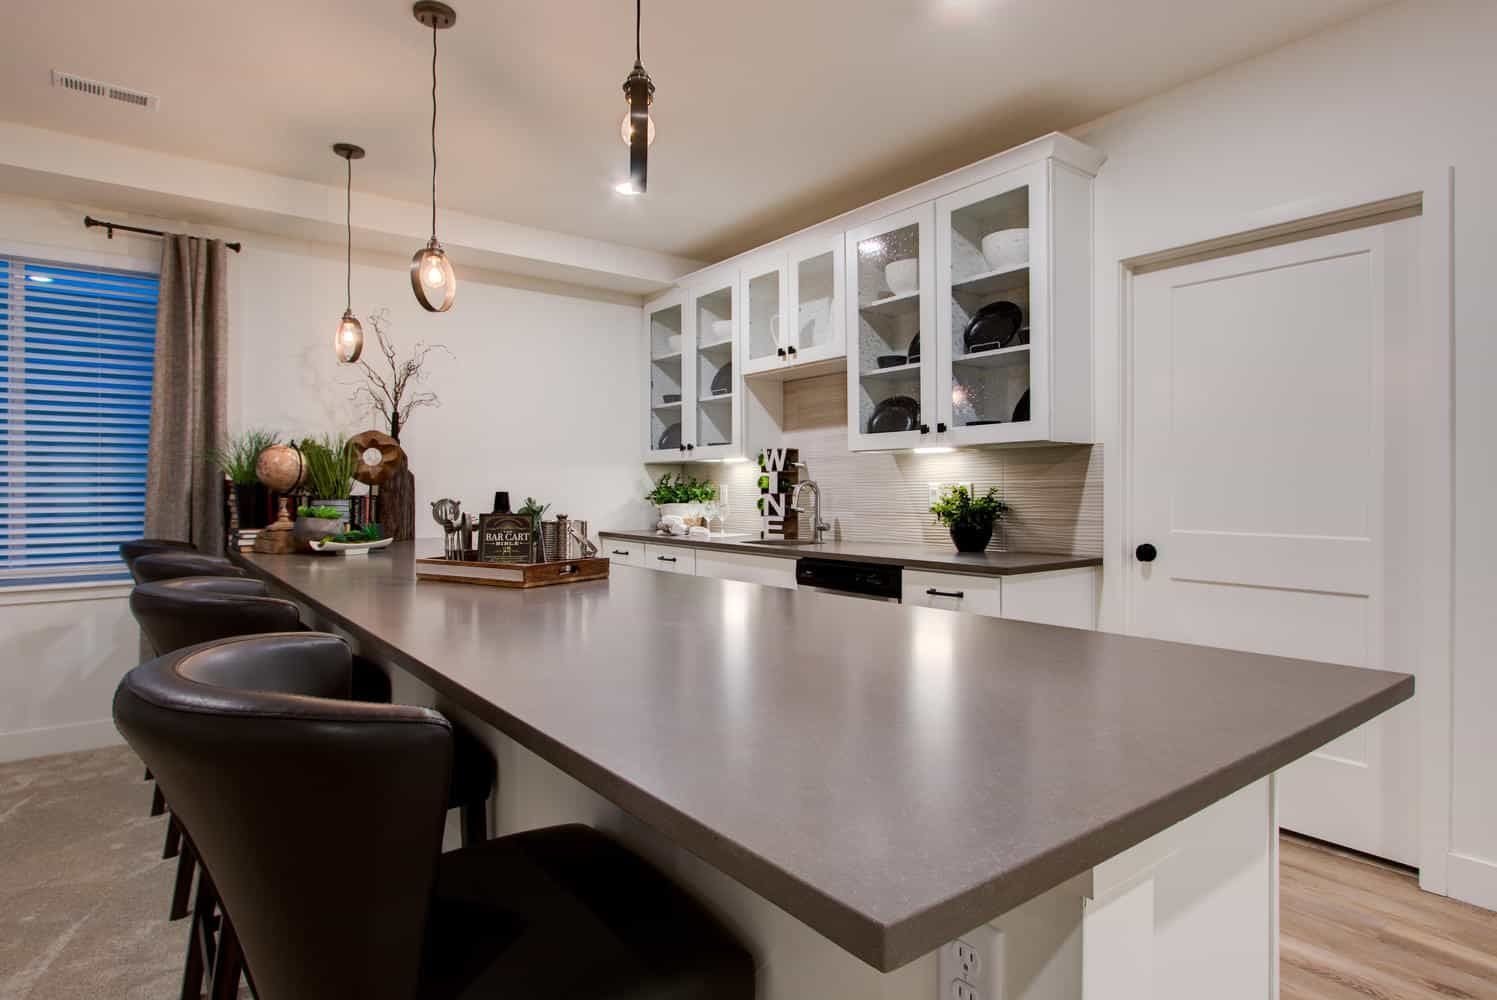 Kitchen featured in the Residence 4505 By Tri Pointe Homes in Denver, CO